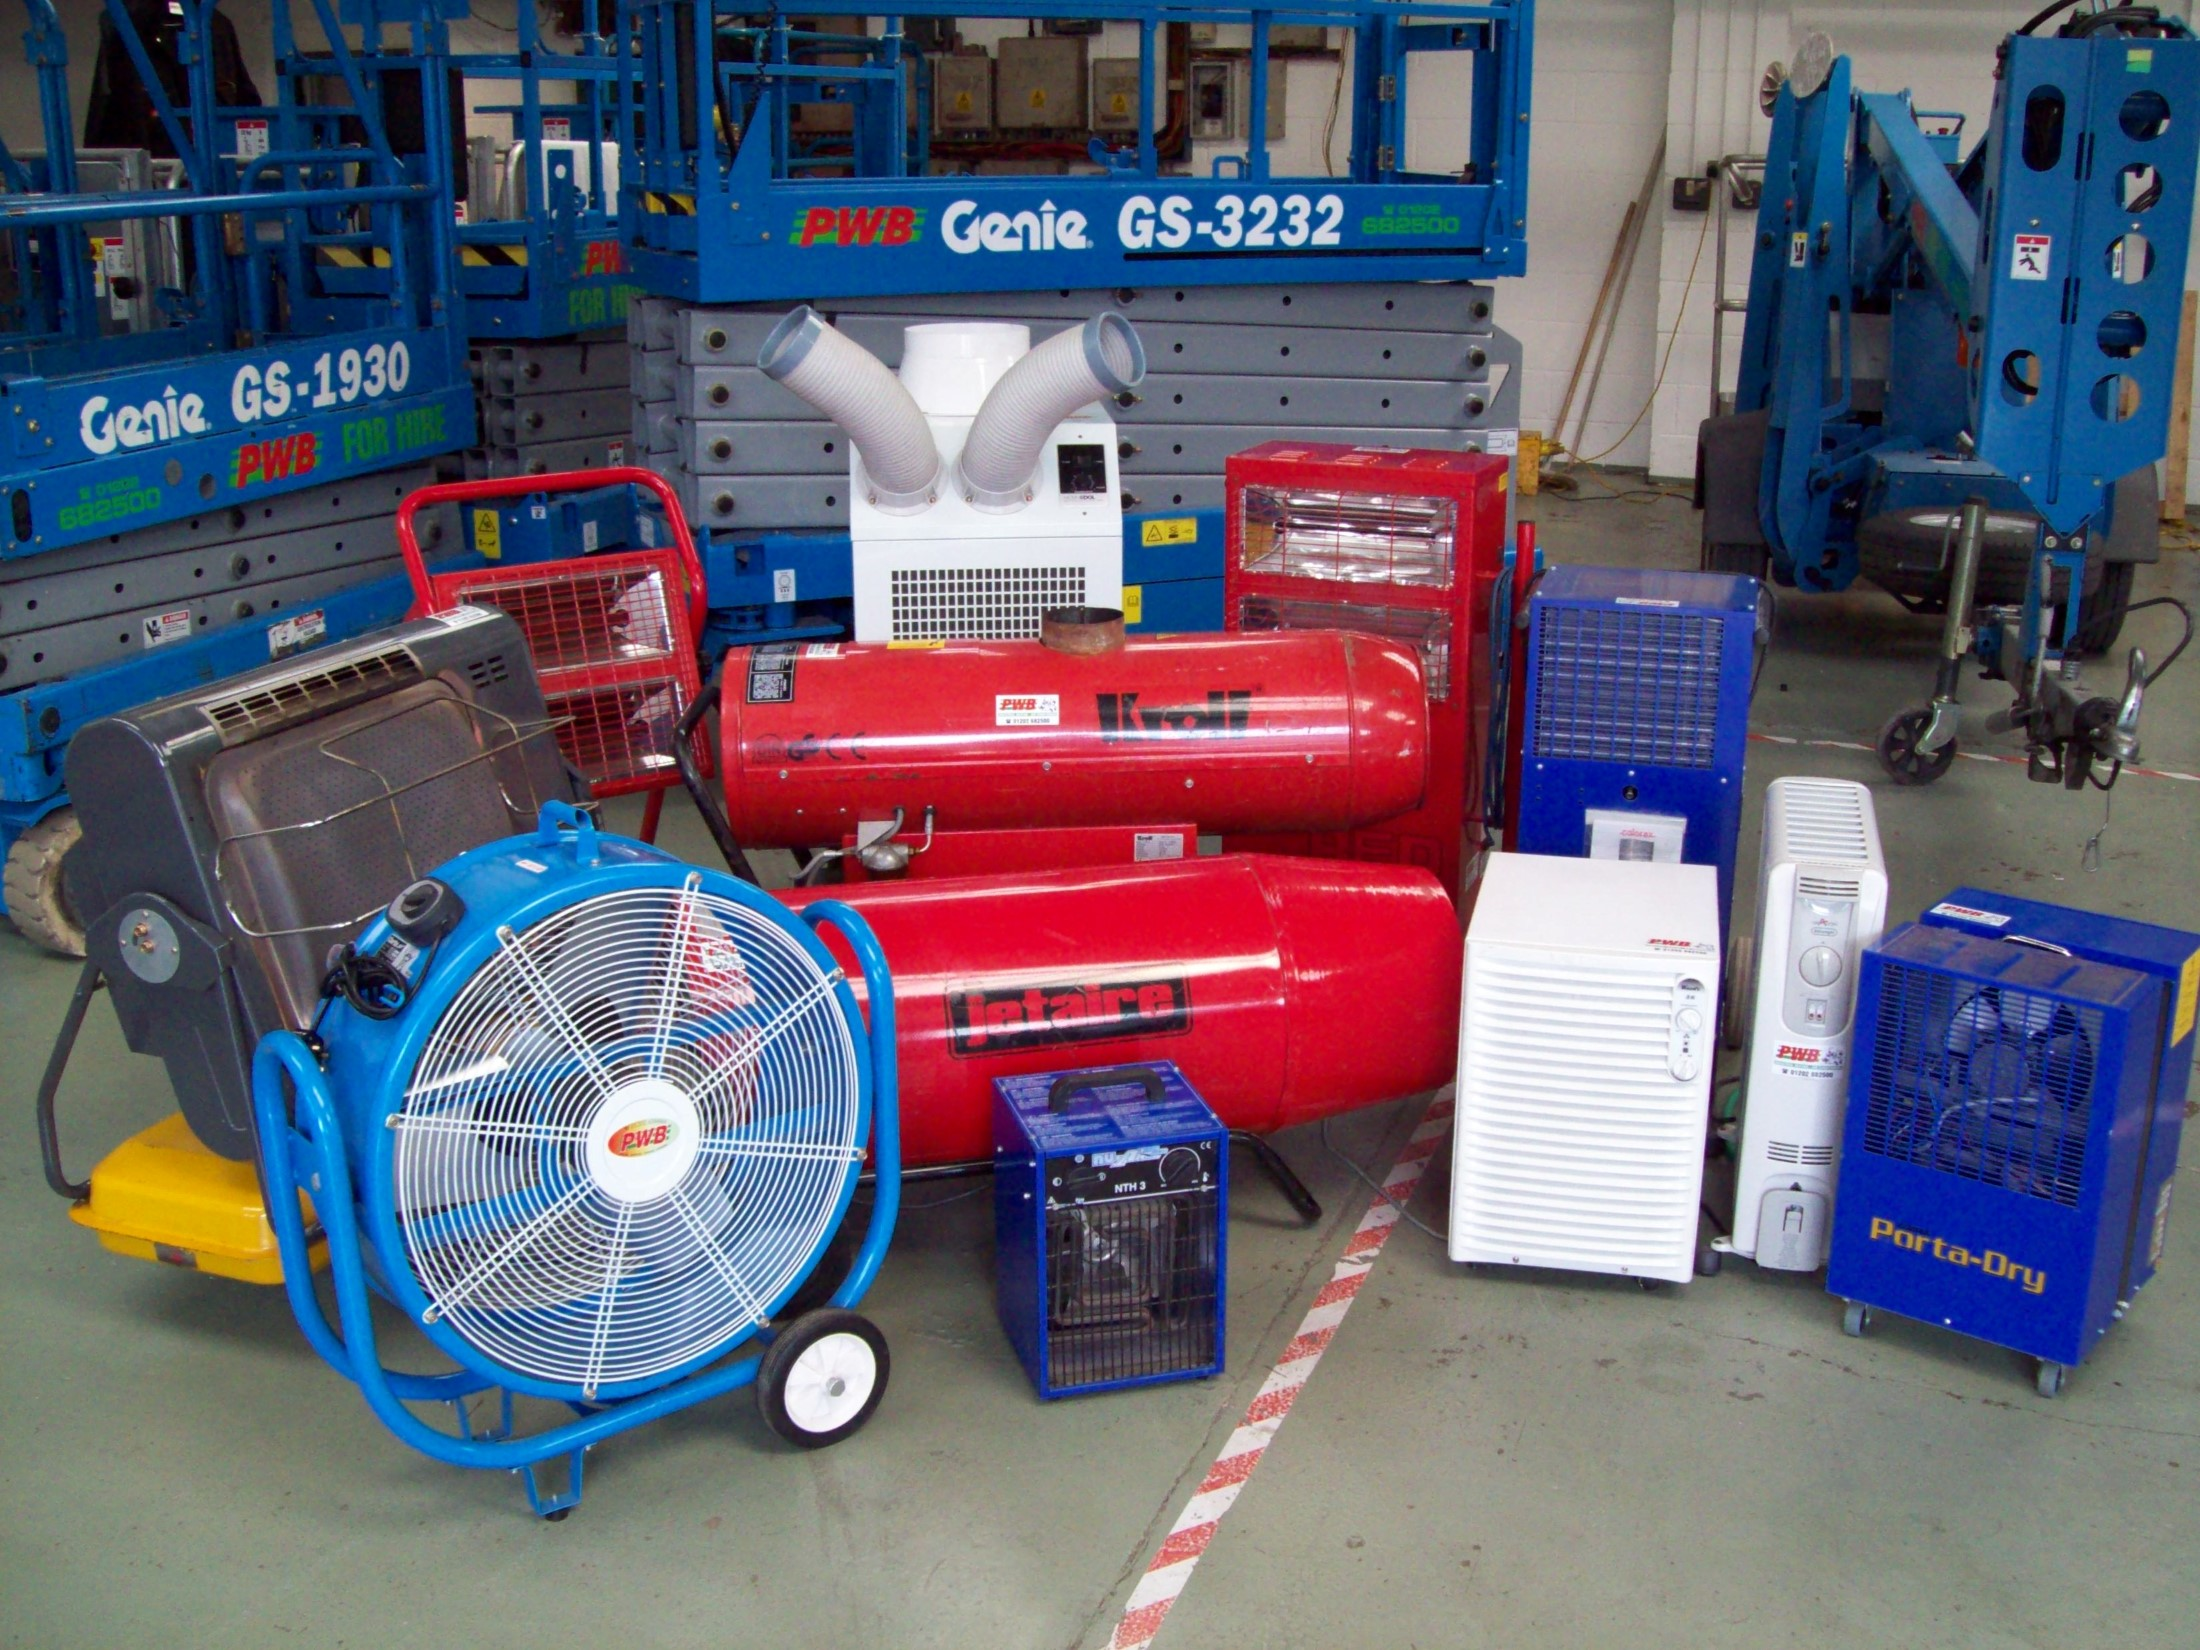 Industrial Heating, Spray Booths, Air Conditioning, Heat Pumps, Access & Lifting Equipment Hire and other Specialist Equipment Hire